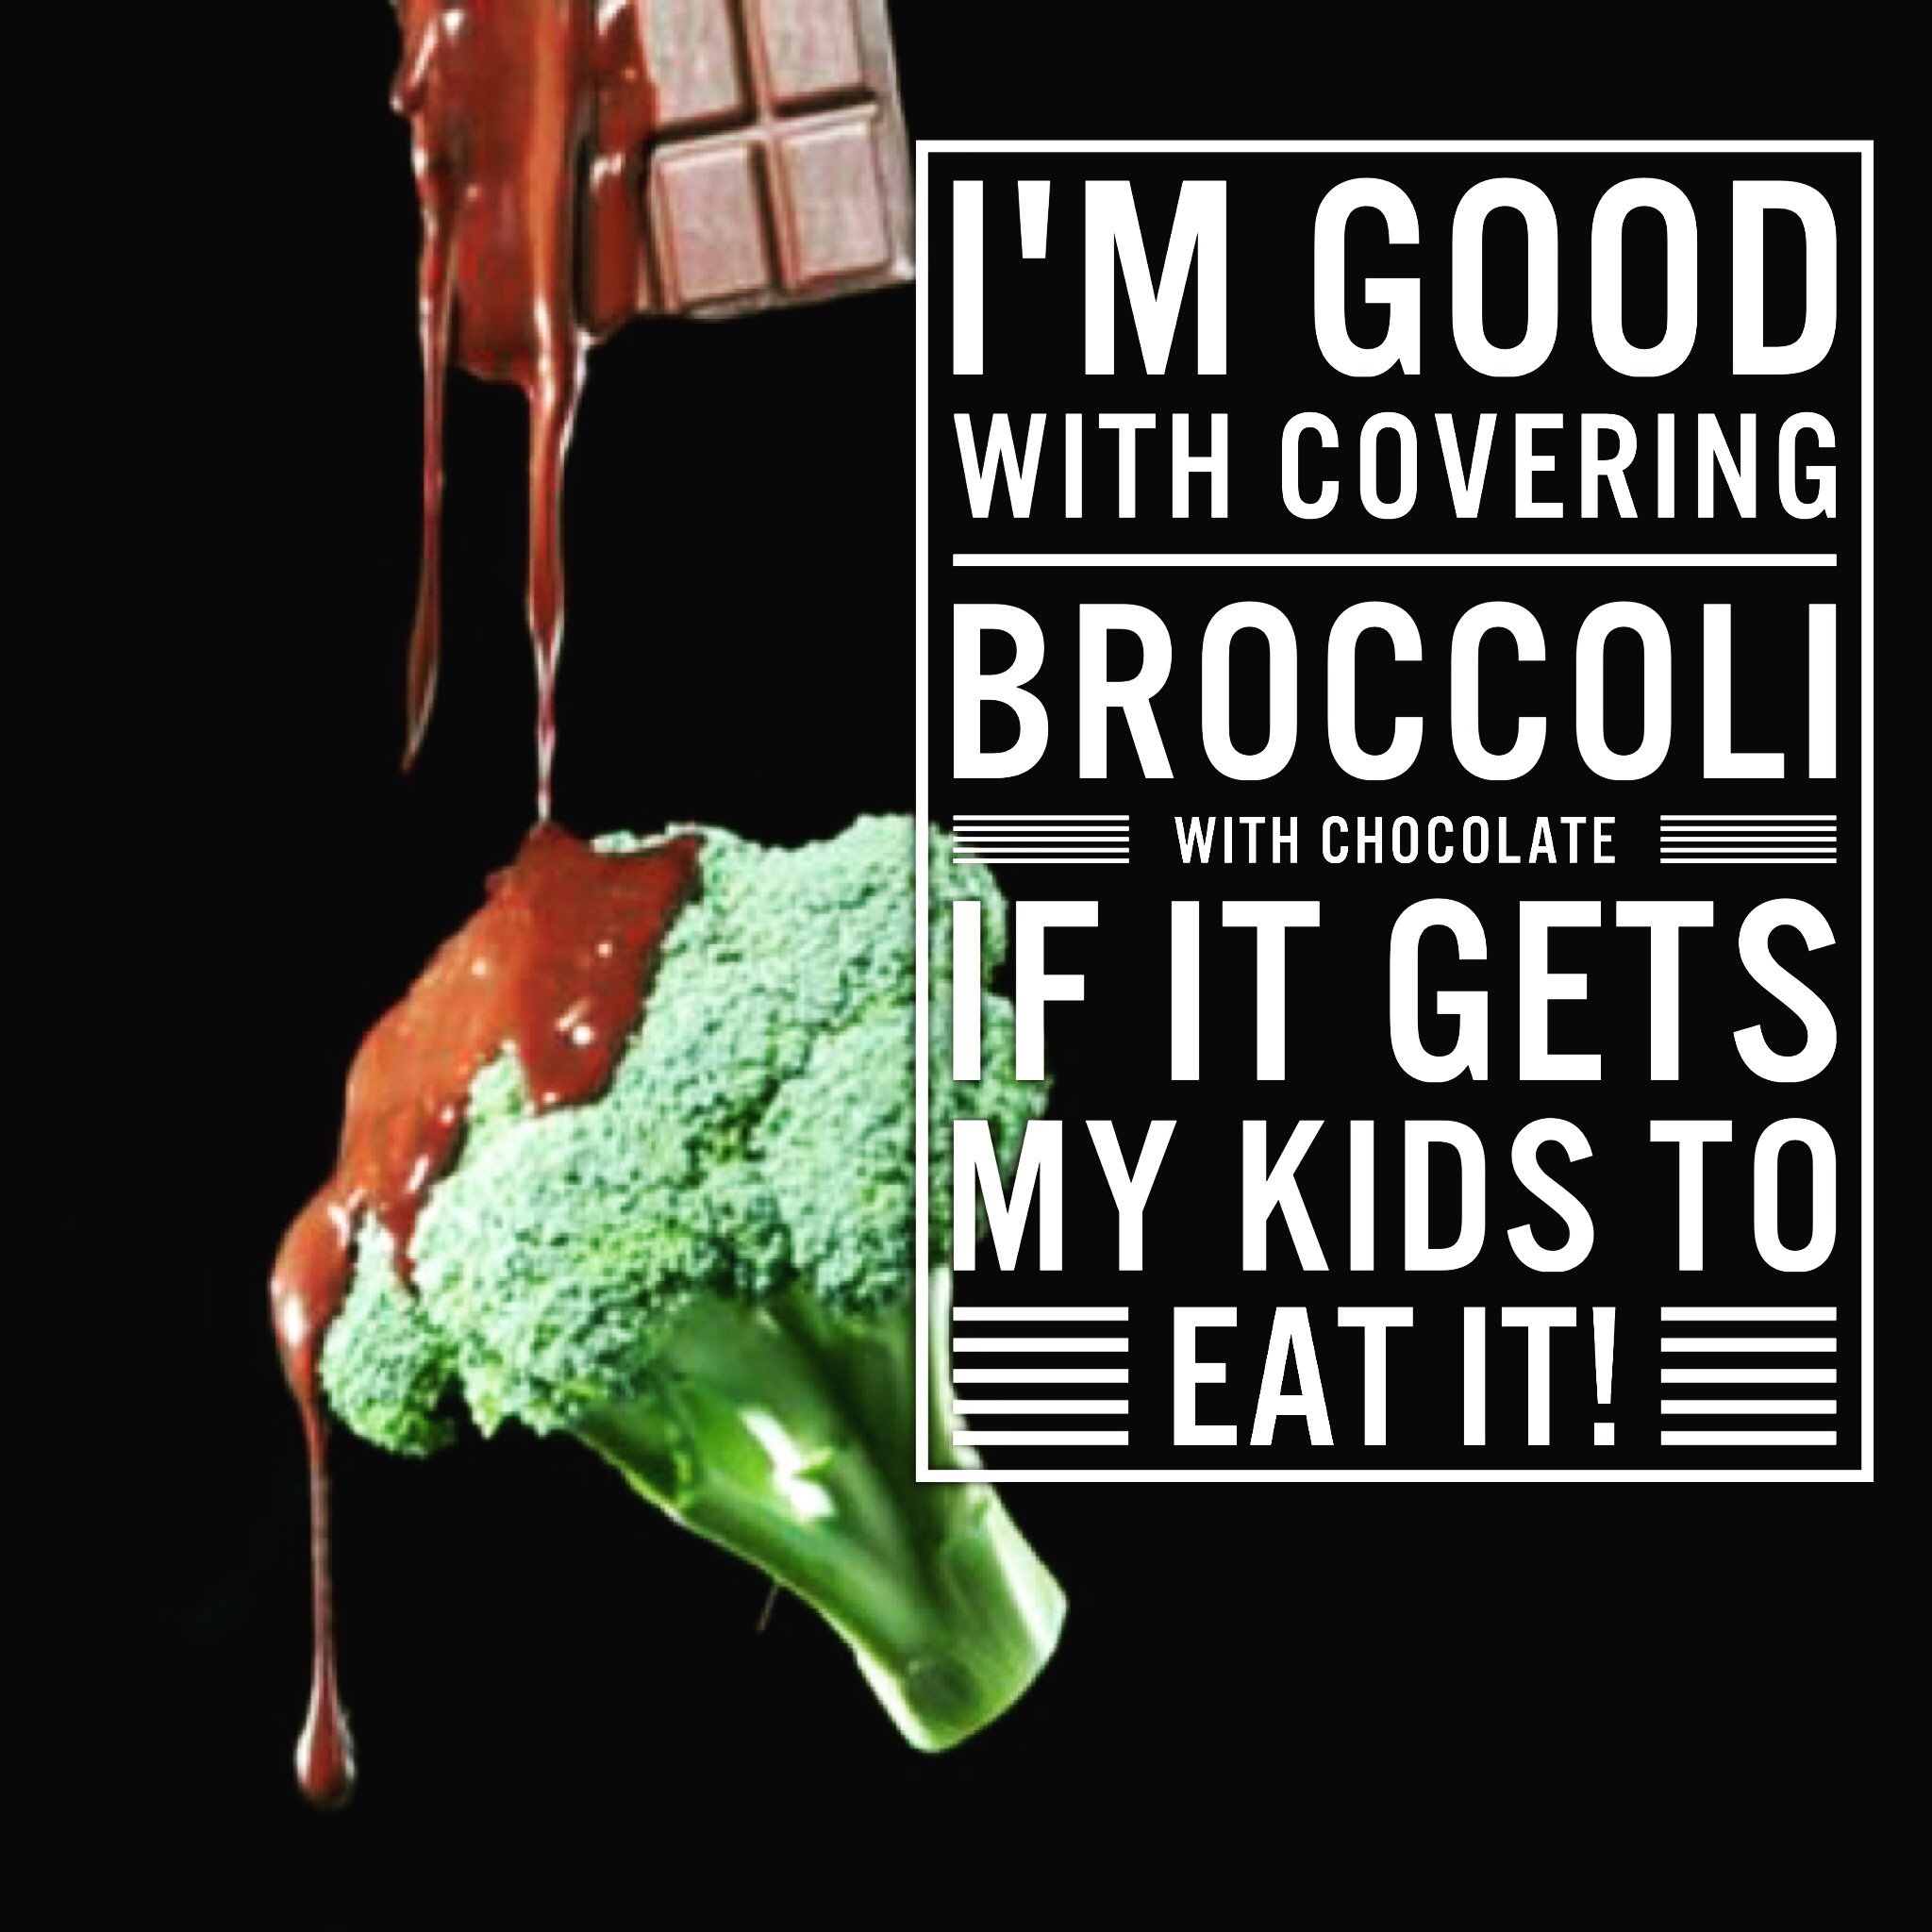 Seriously - I will do anything to get my kids to eat veg.